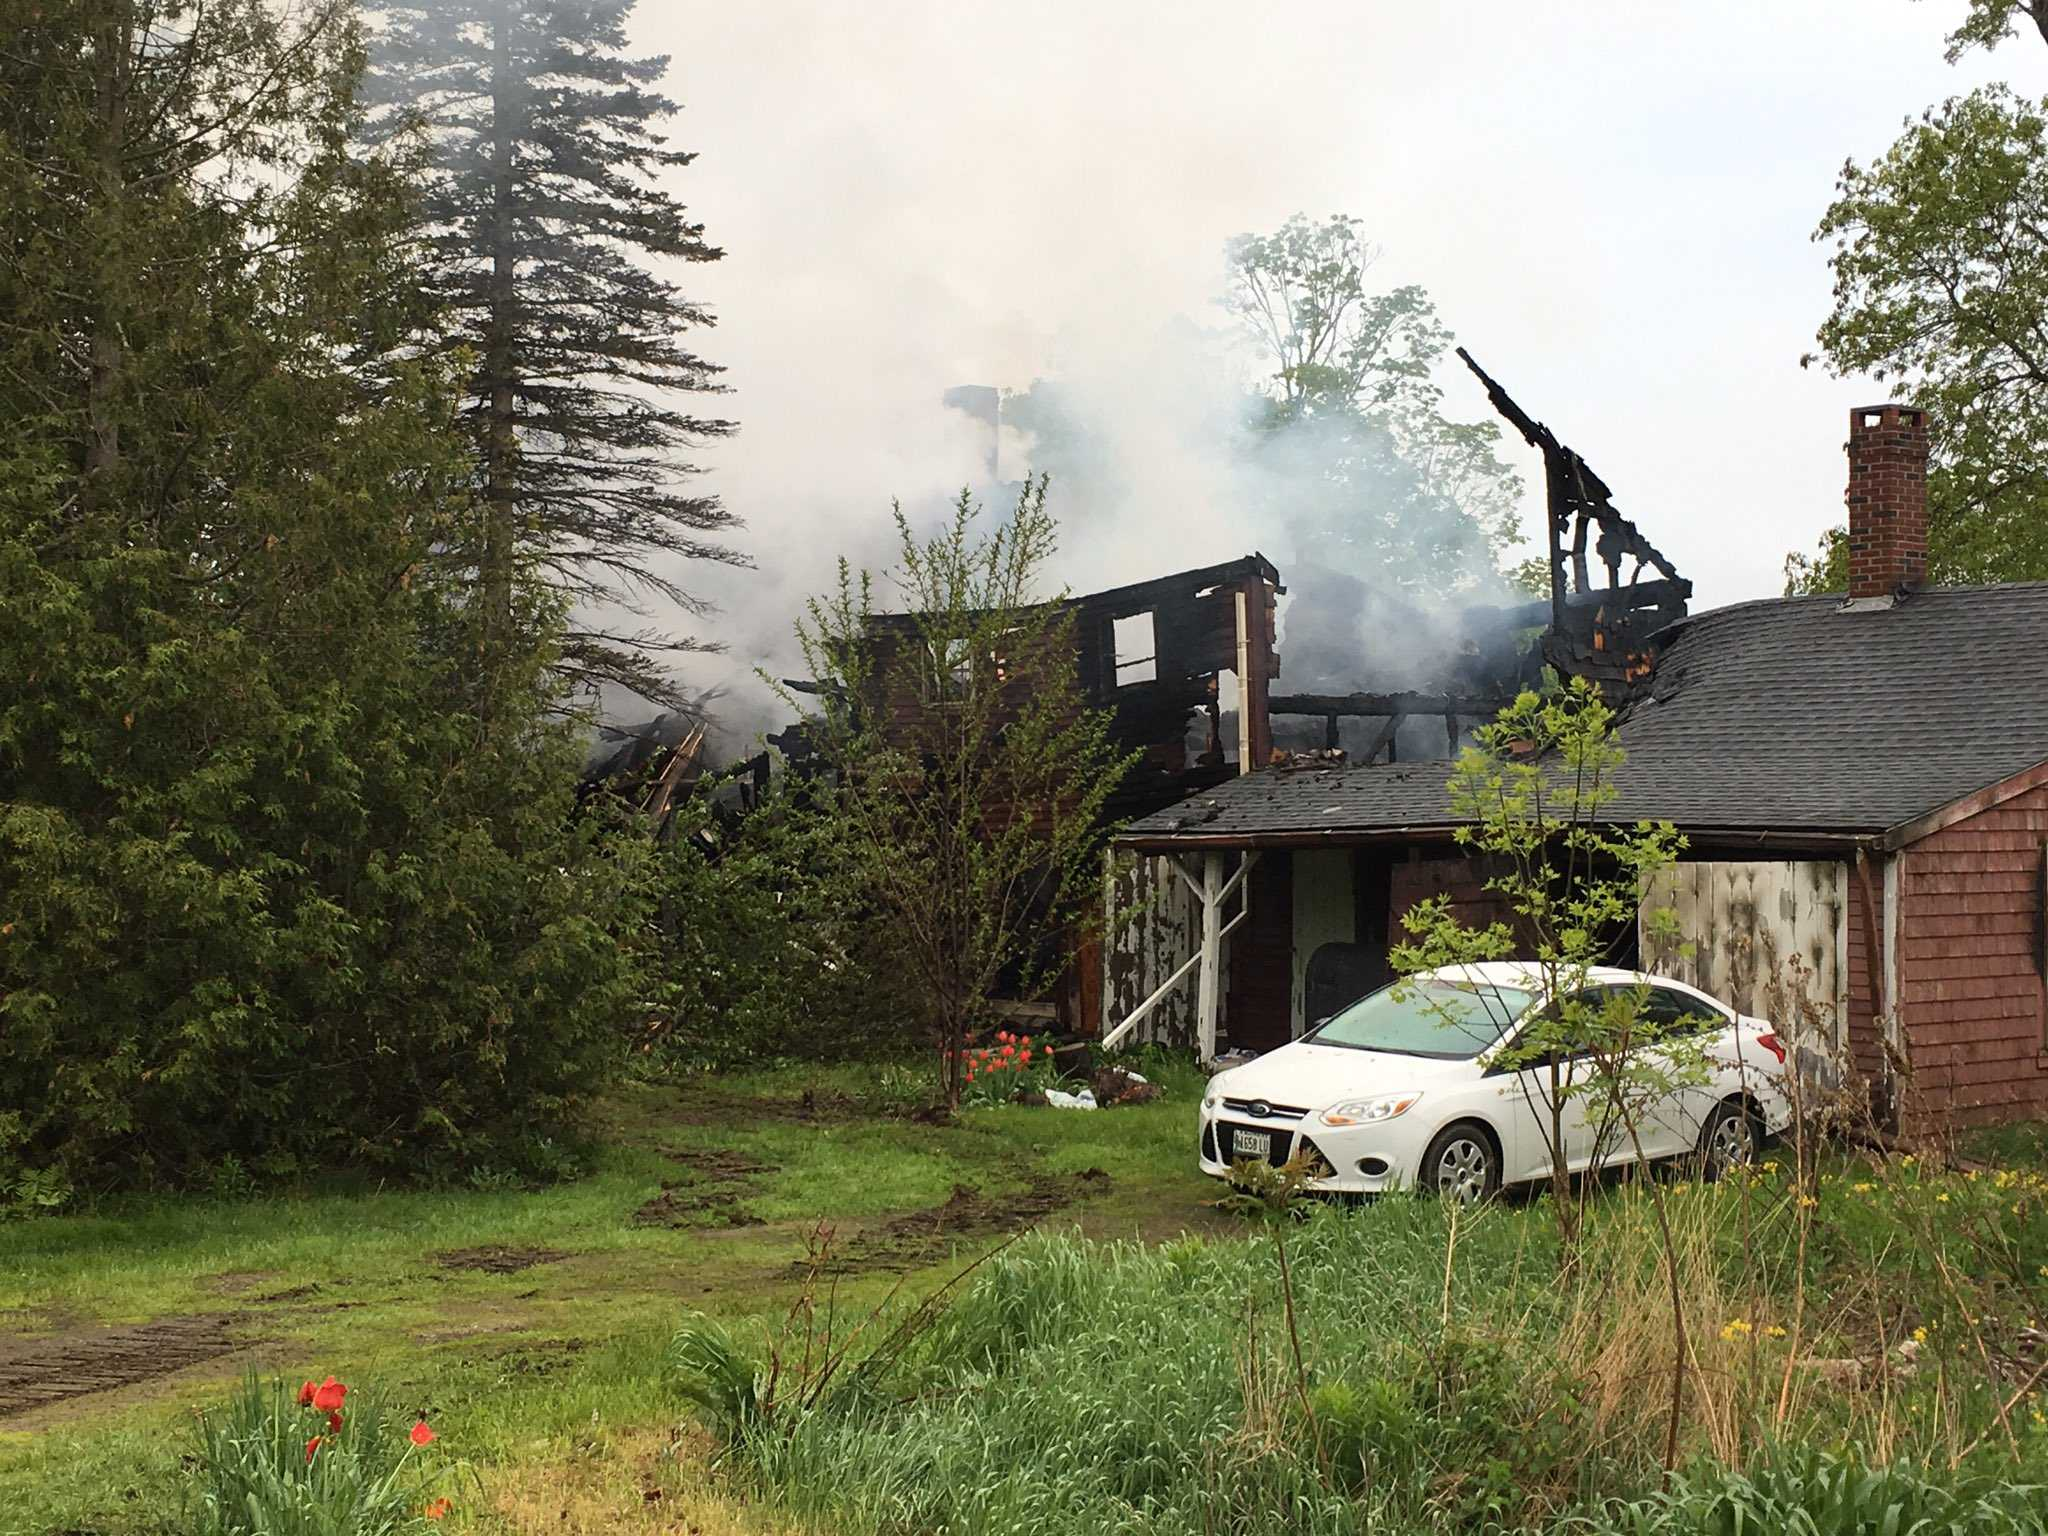 80-year-old Union man killed in farmhouse blaze